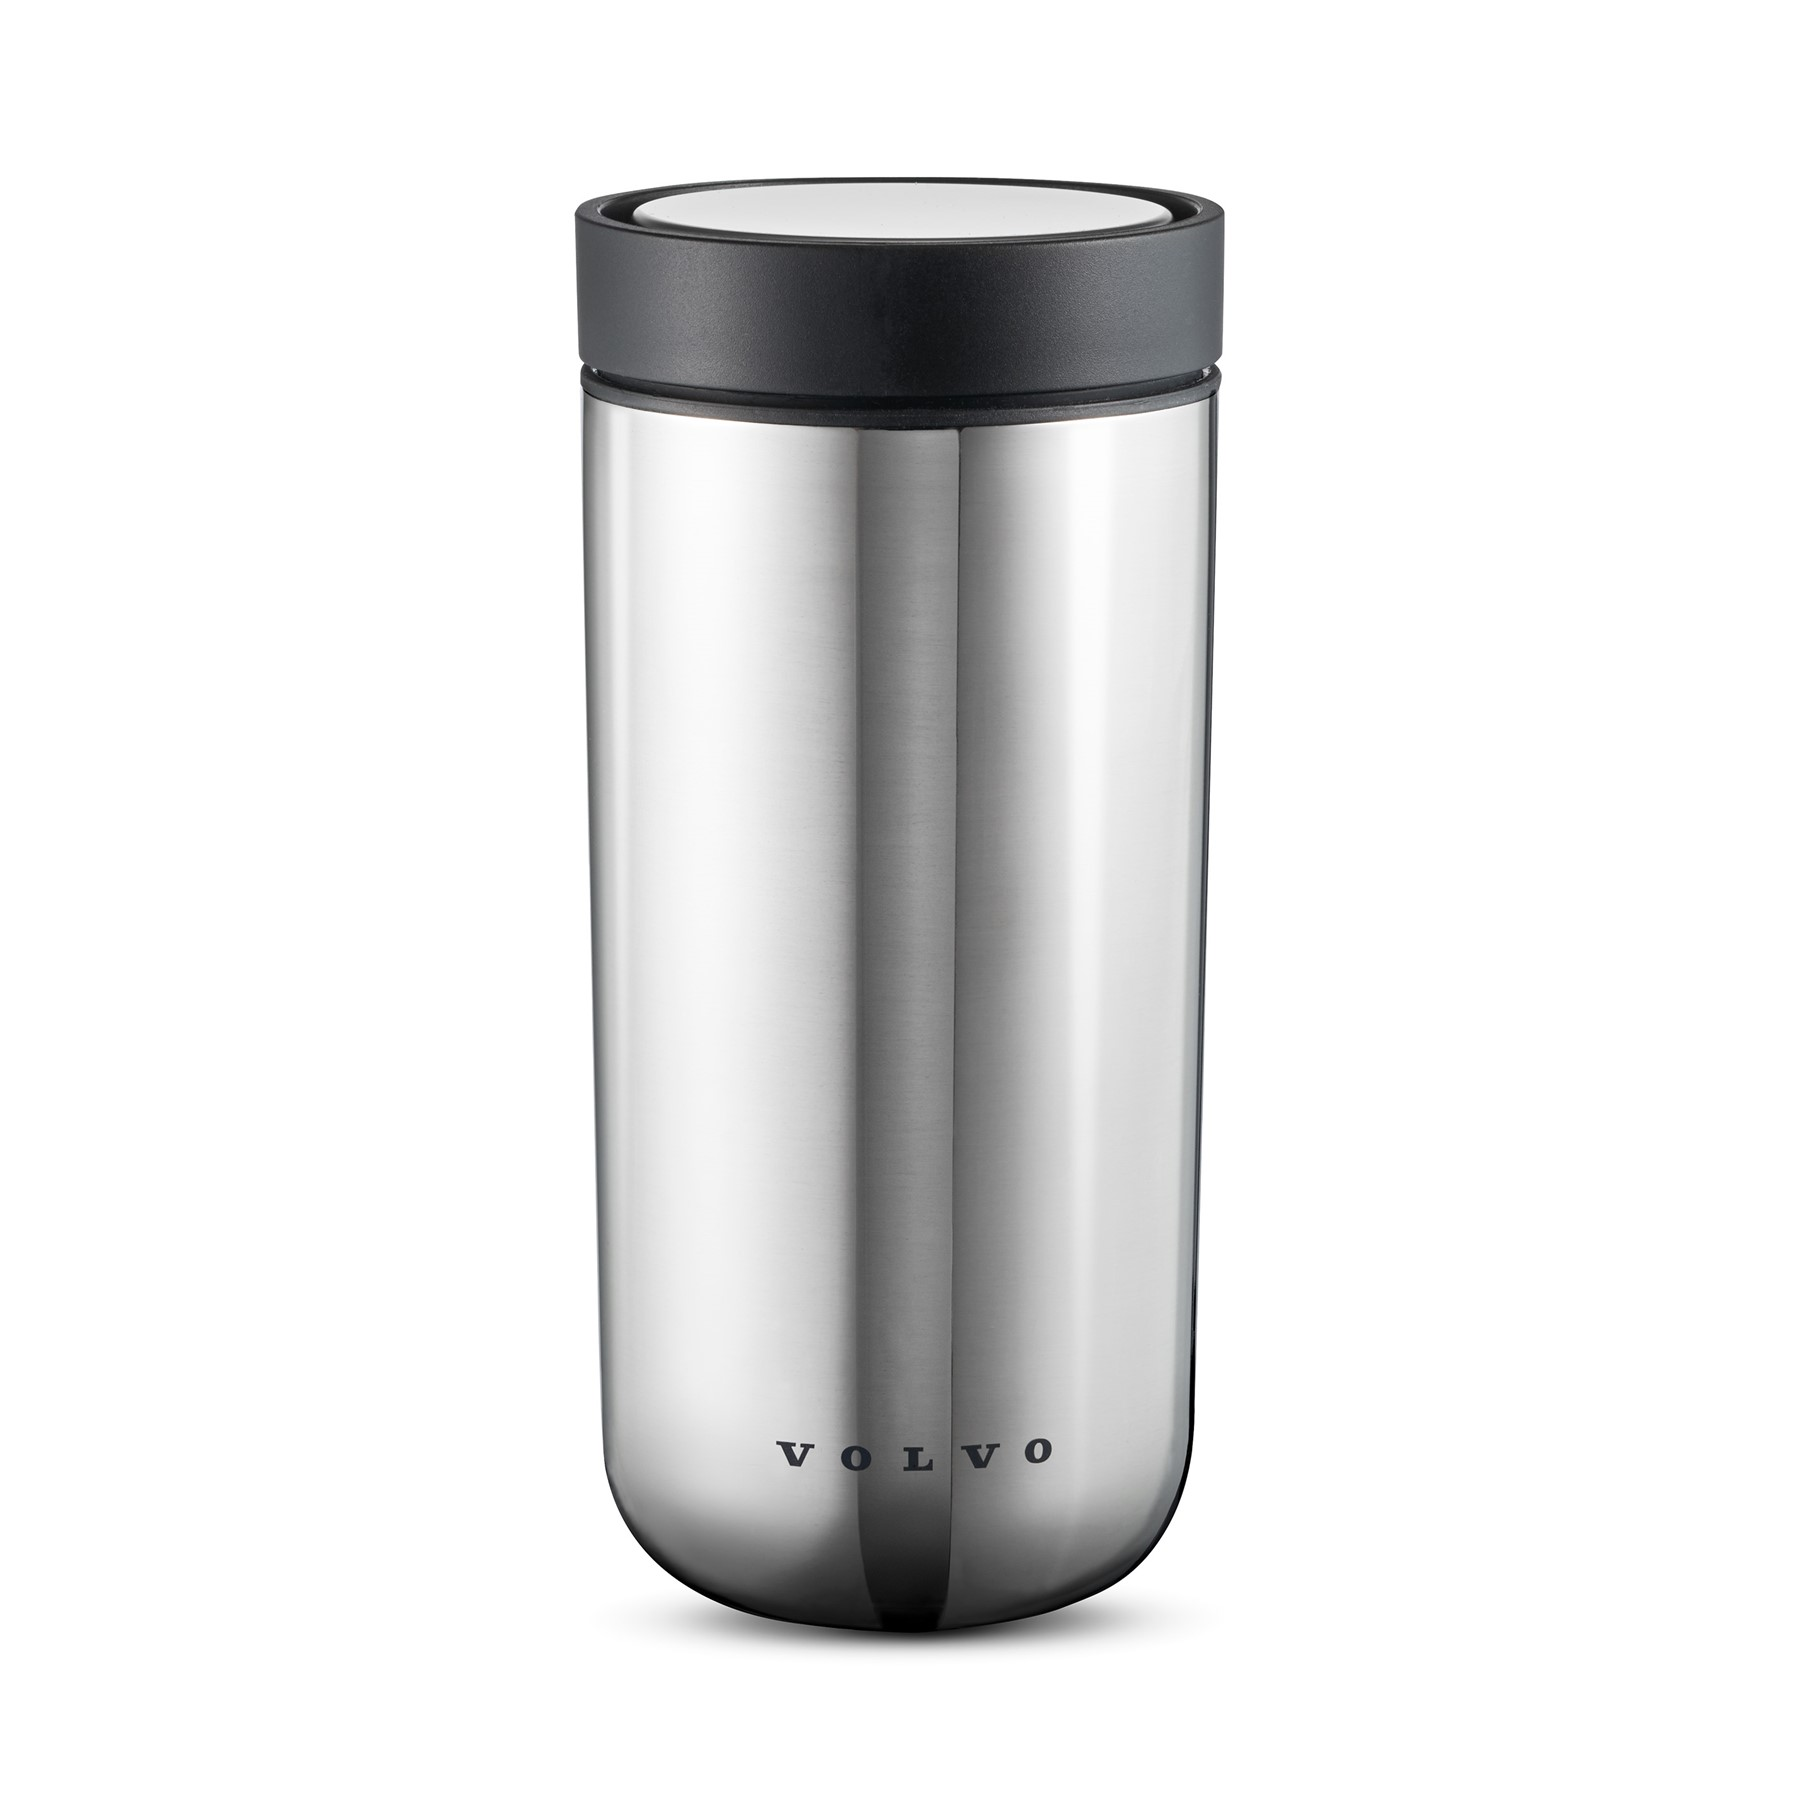 Volvo Car Lifestyle Collection Shop. Stelton To Go Click